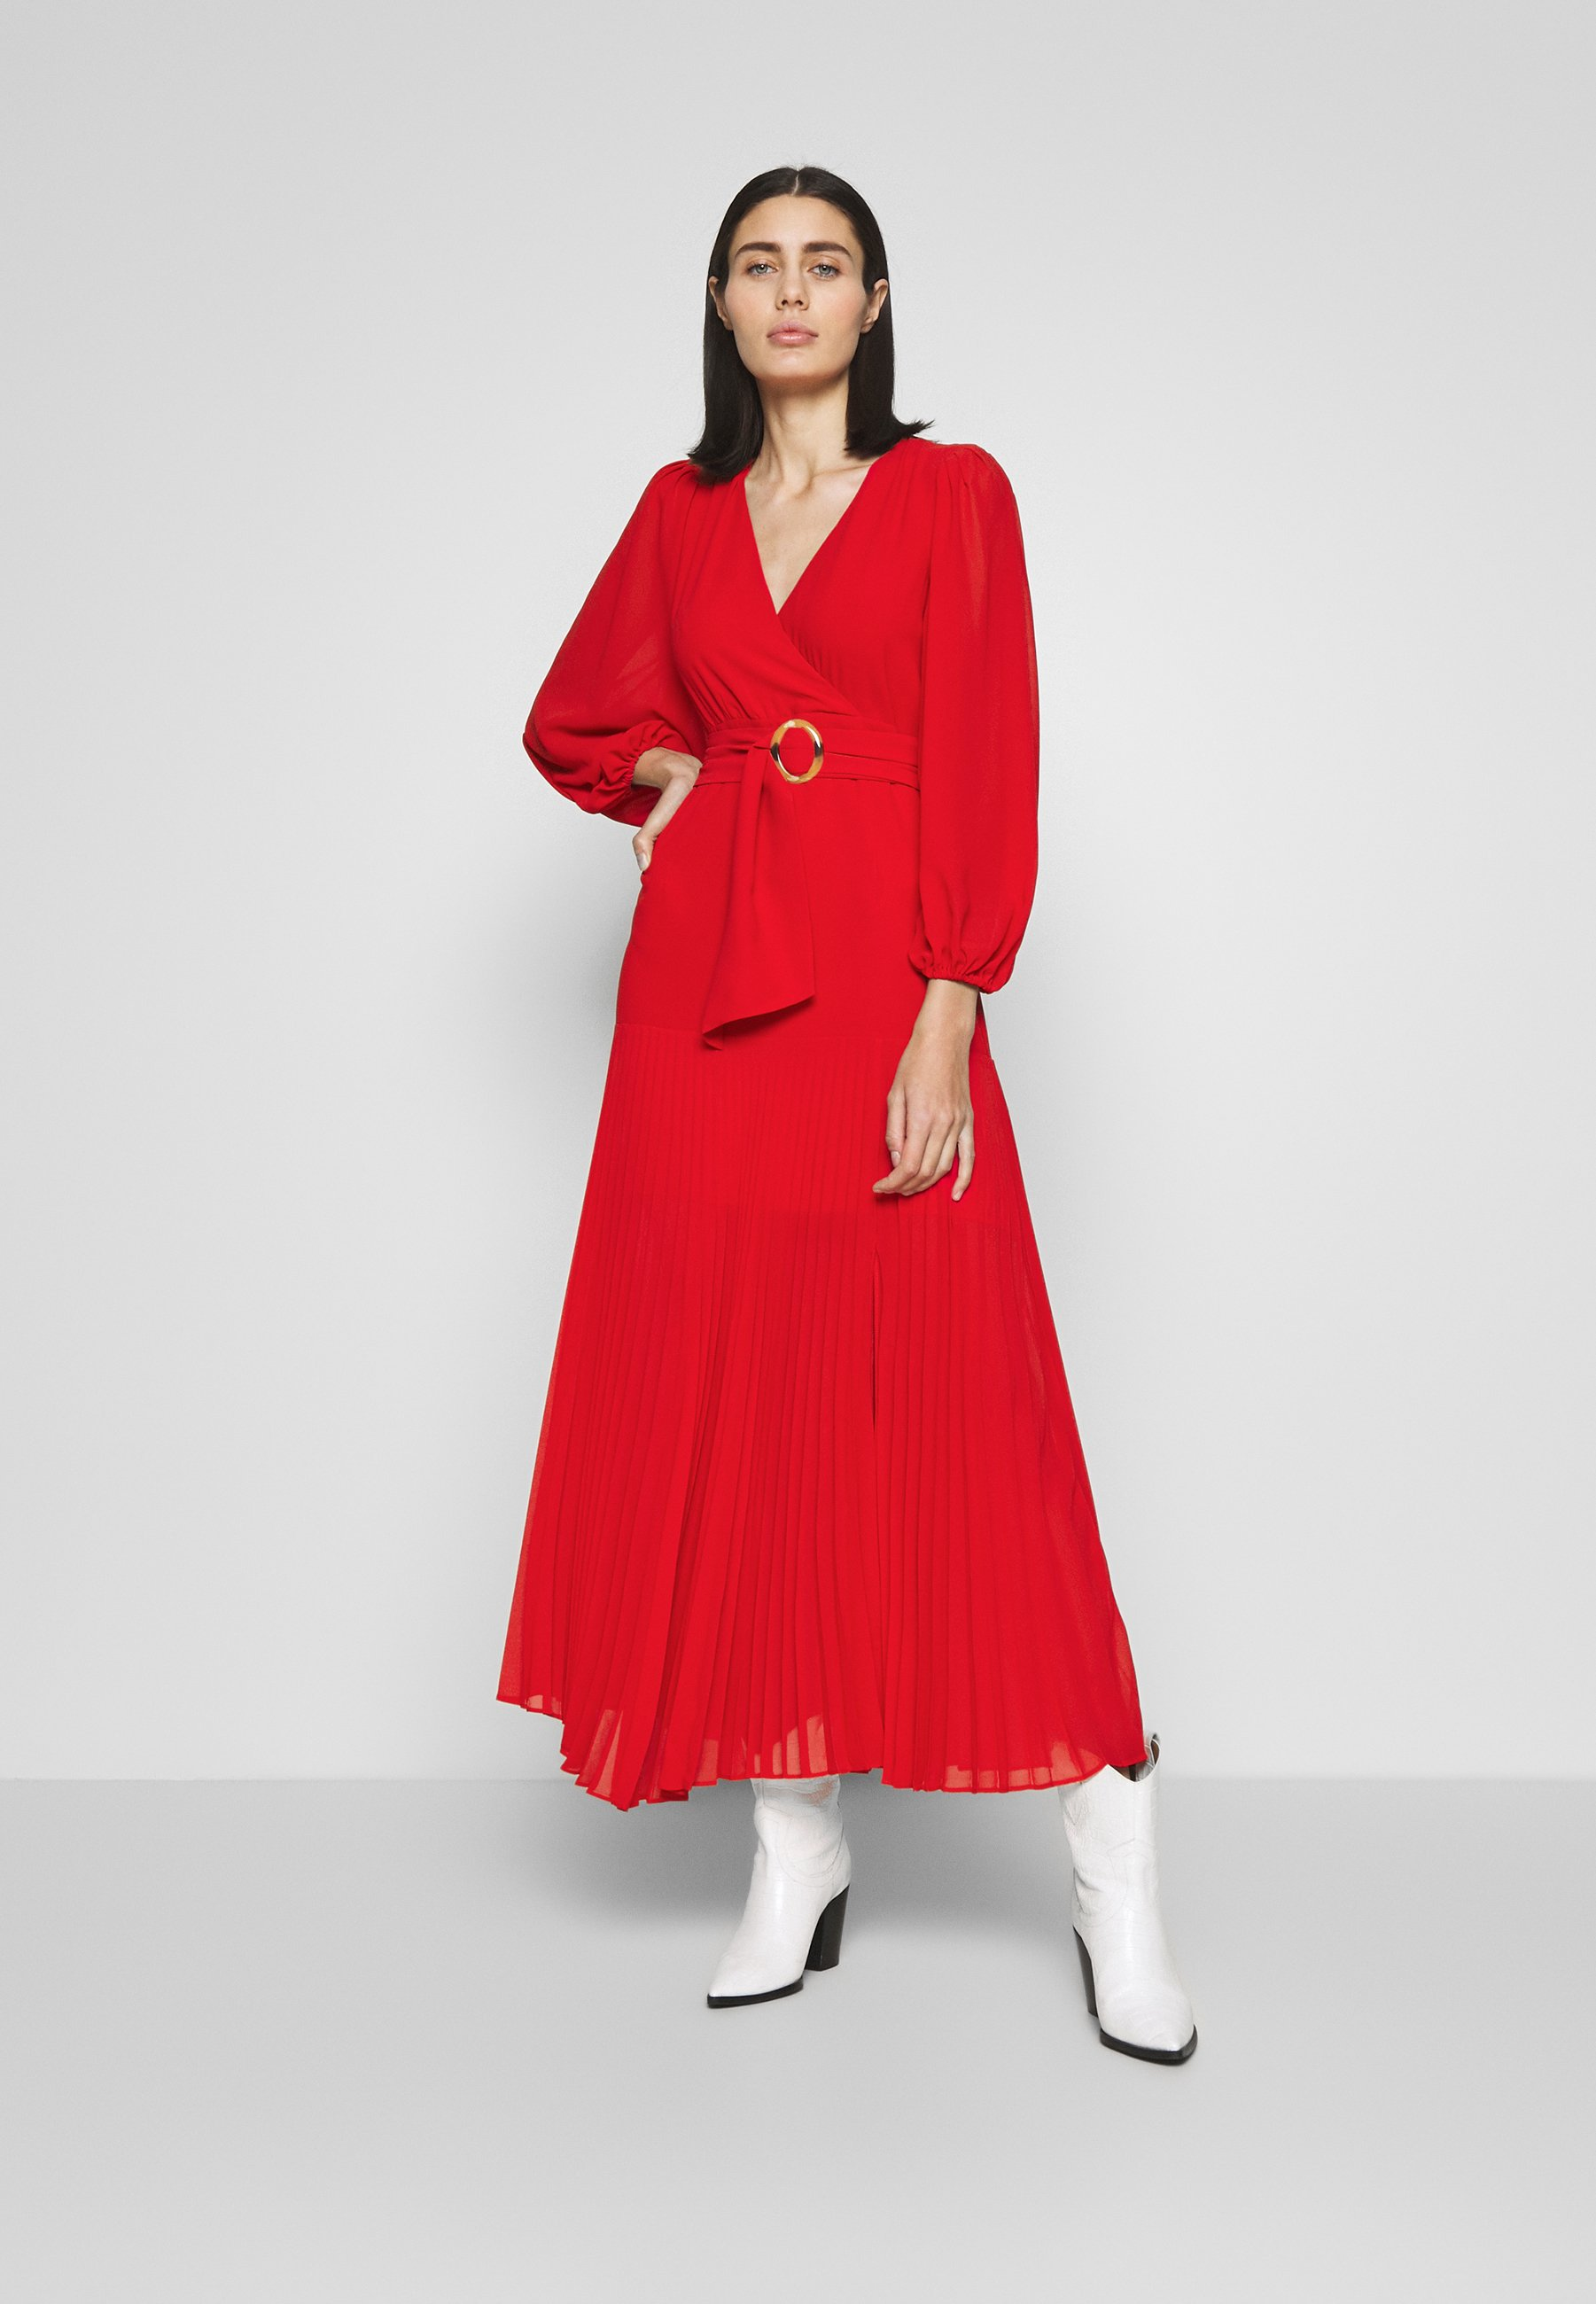 Bardot DAYTONA DRESS - Robe d'été - lipstick red - Robes femme bYiLf